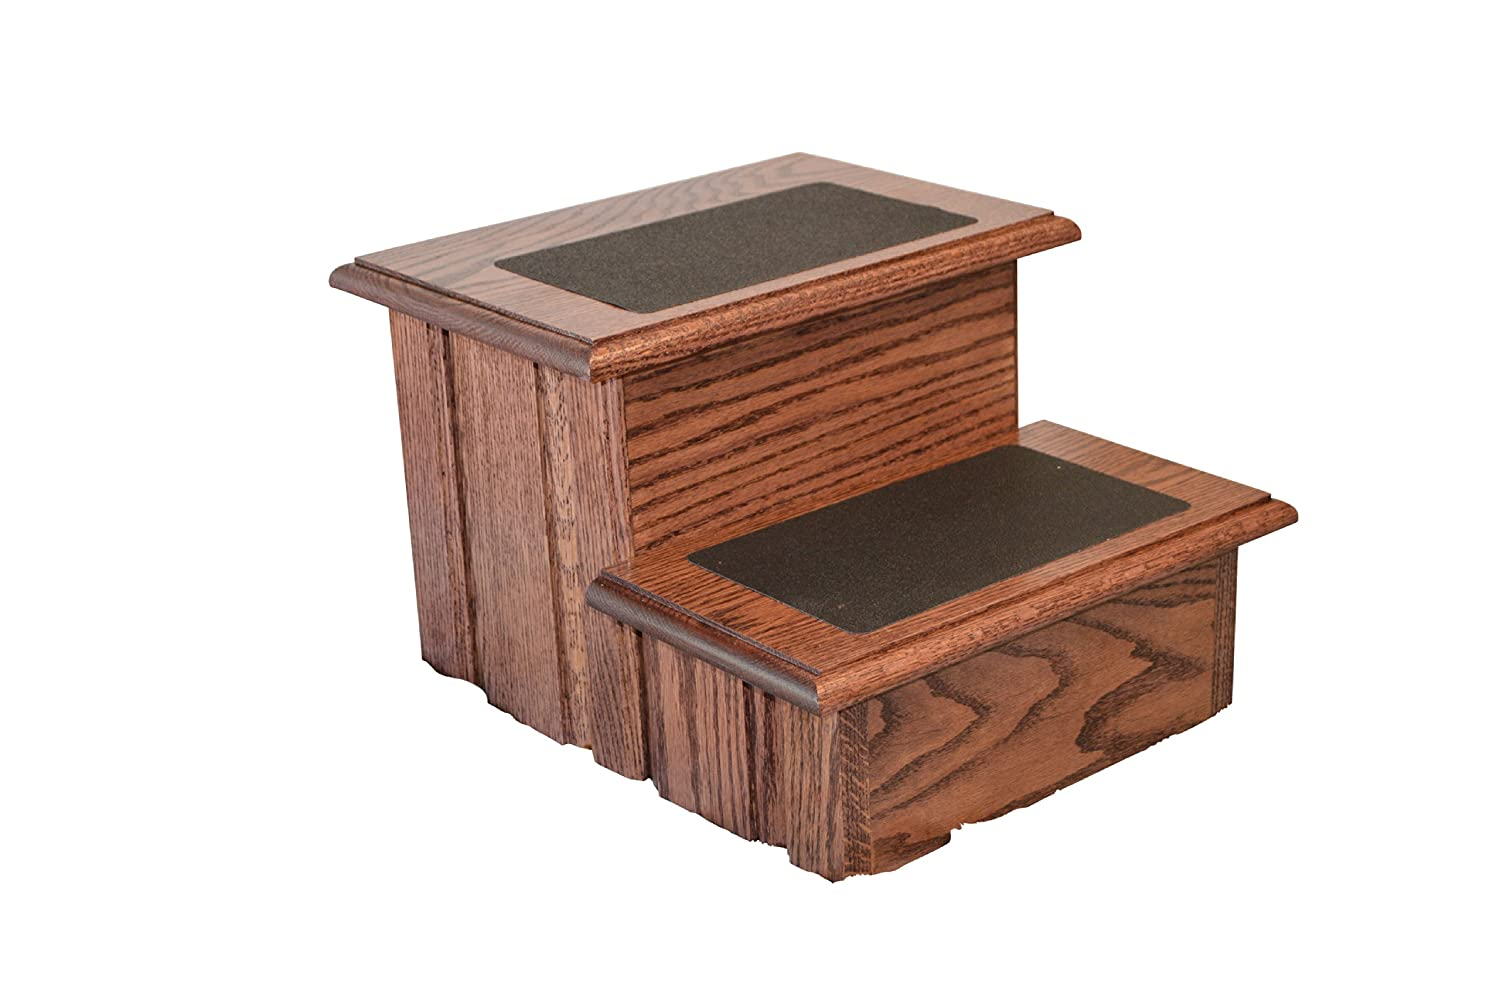 Rich Cherry Finished Solid Oak Step Stool With Non Slip Tread 11 ½ Tall Premier Pet Steps SSnOCH